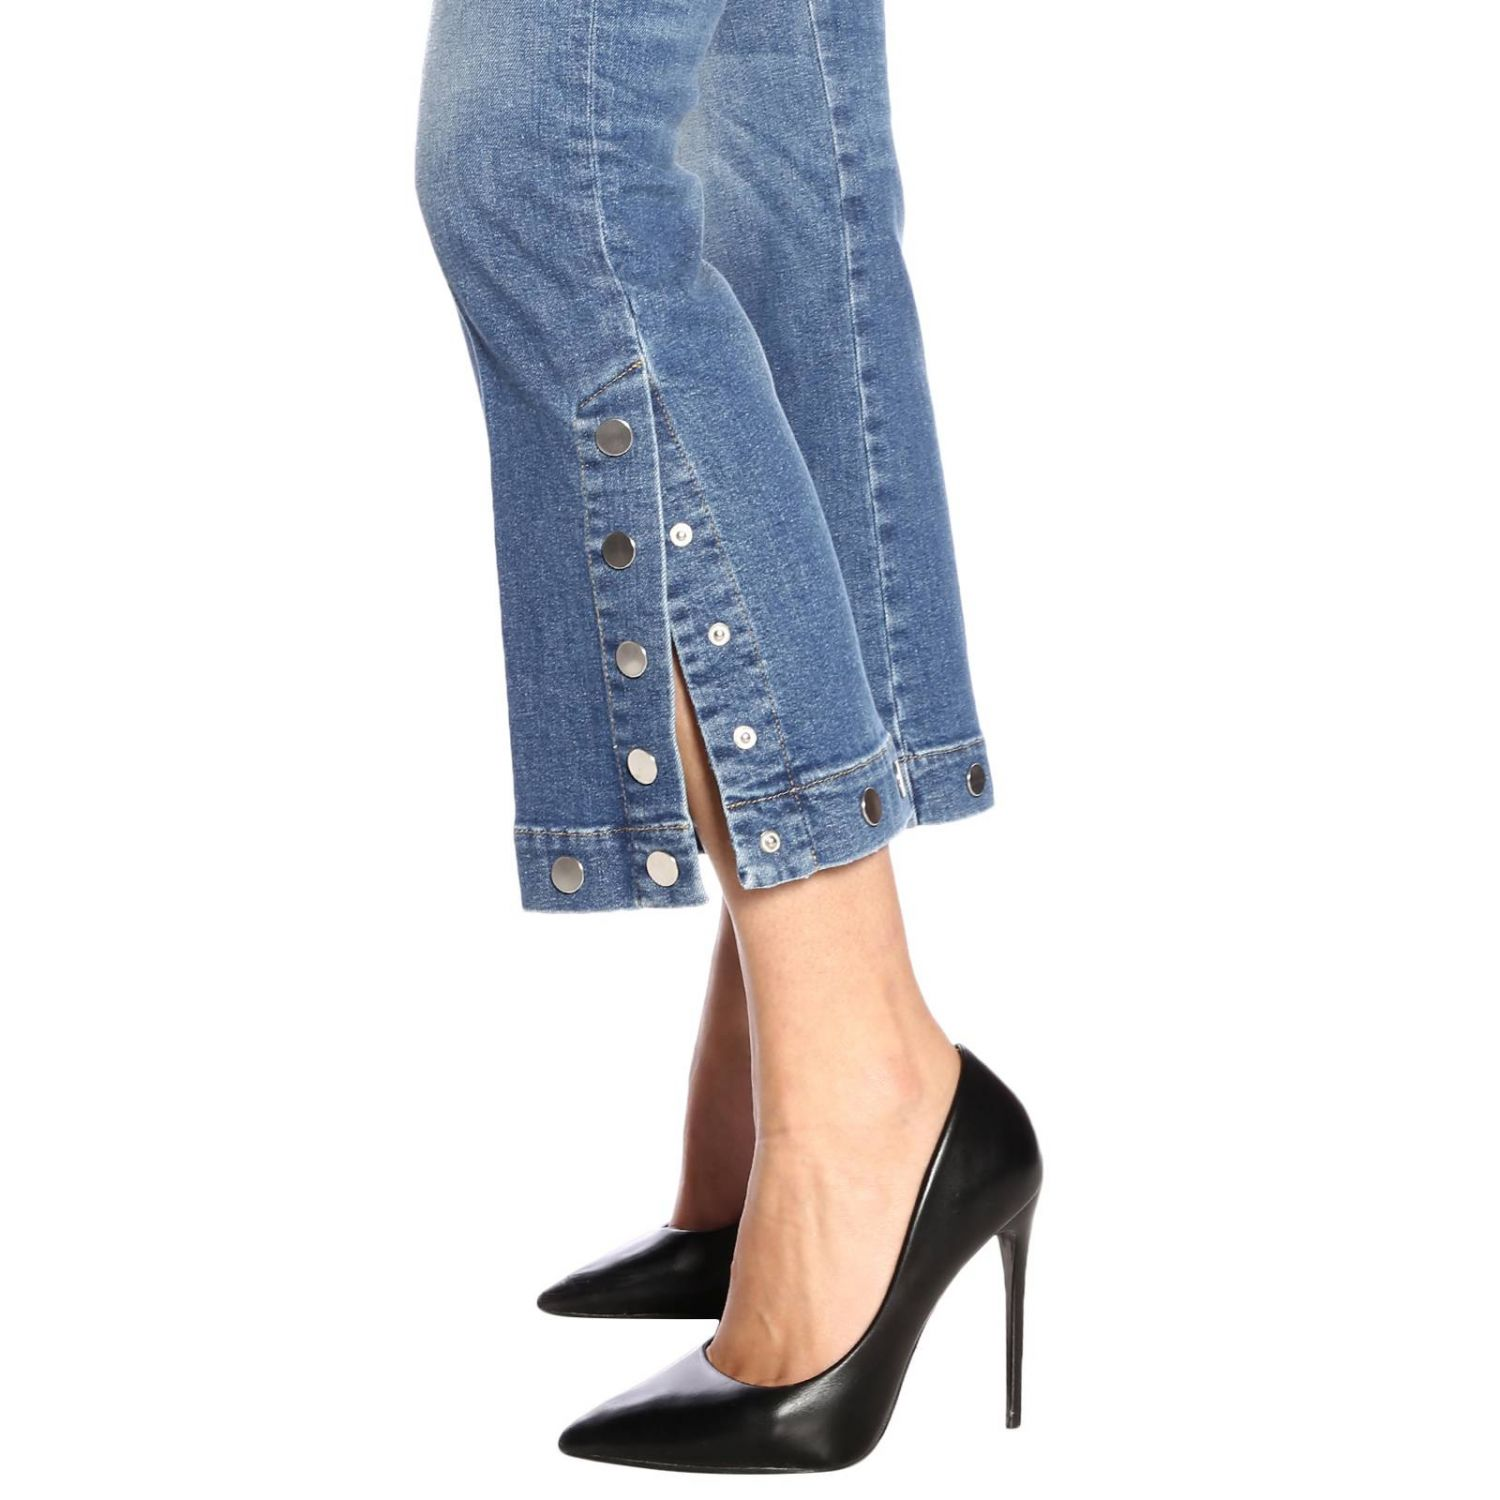 Jeans 7 For All Mankind a 5 tasche stretch used a trombetta blue 4